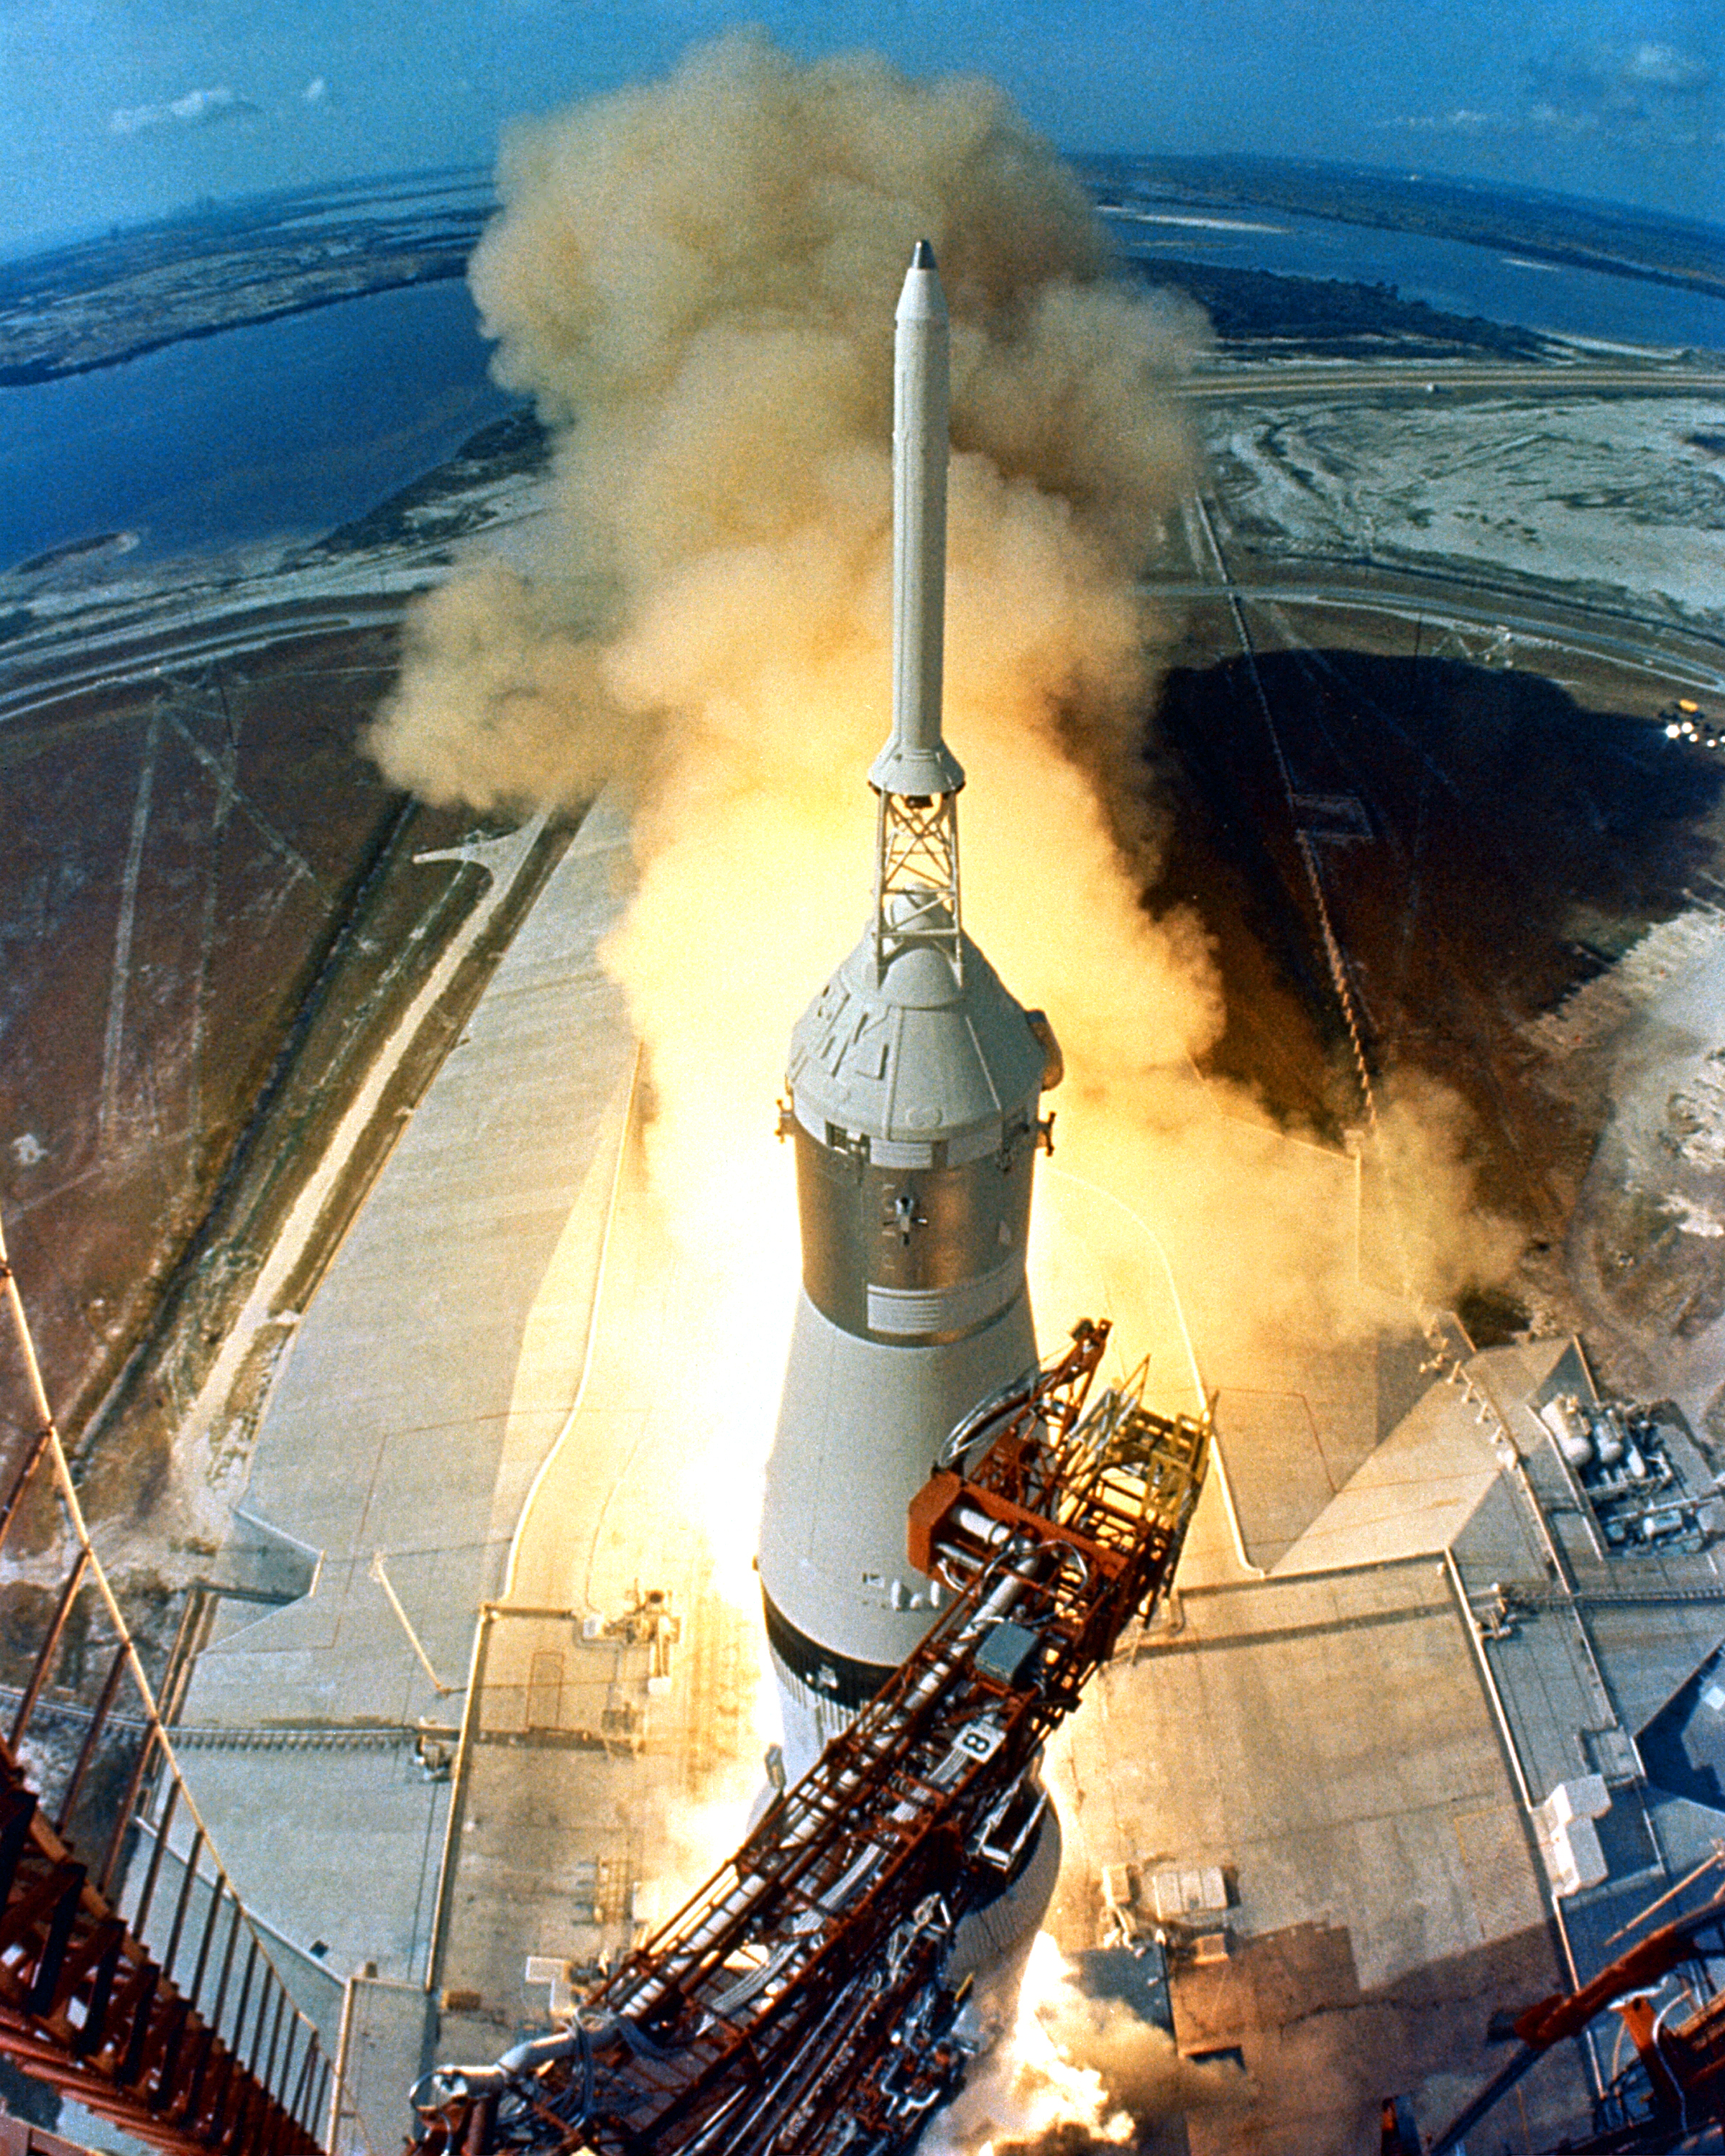 http://upload.wikimedia.org/wikipedia/commons/7/7d/Apollo_11_Launch2.jpg